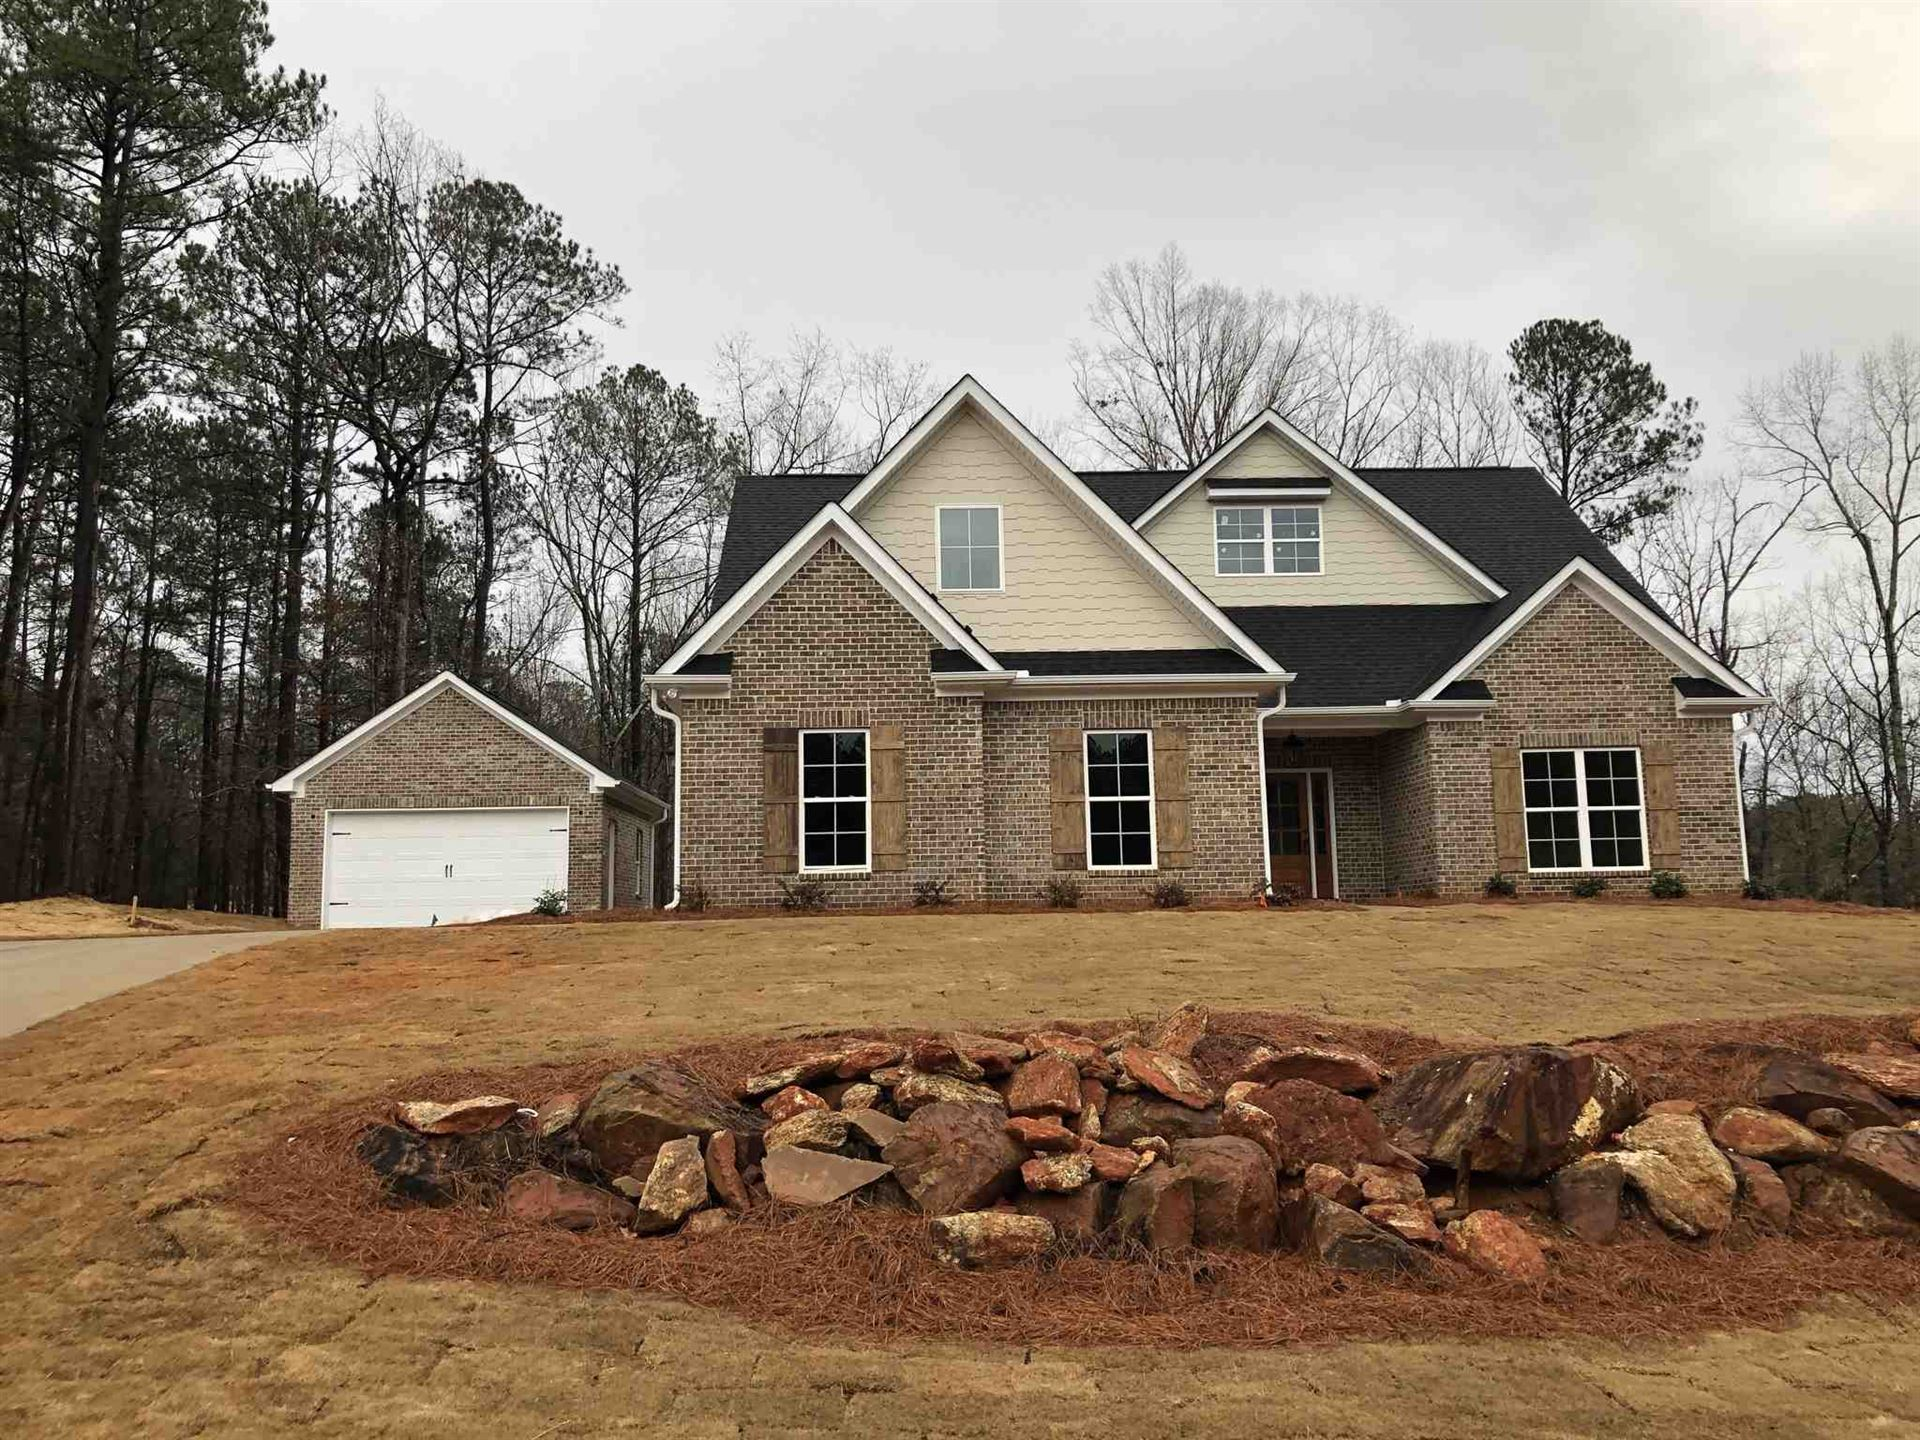 85 Adams Dr, Forsyth, GA 31029 - MLS#: 8866207